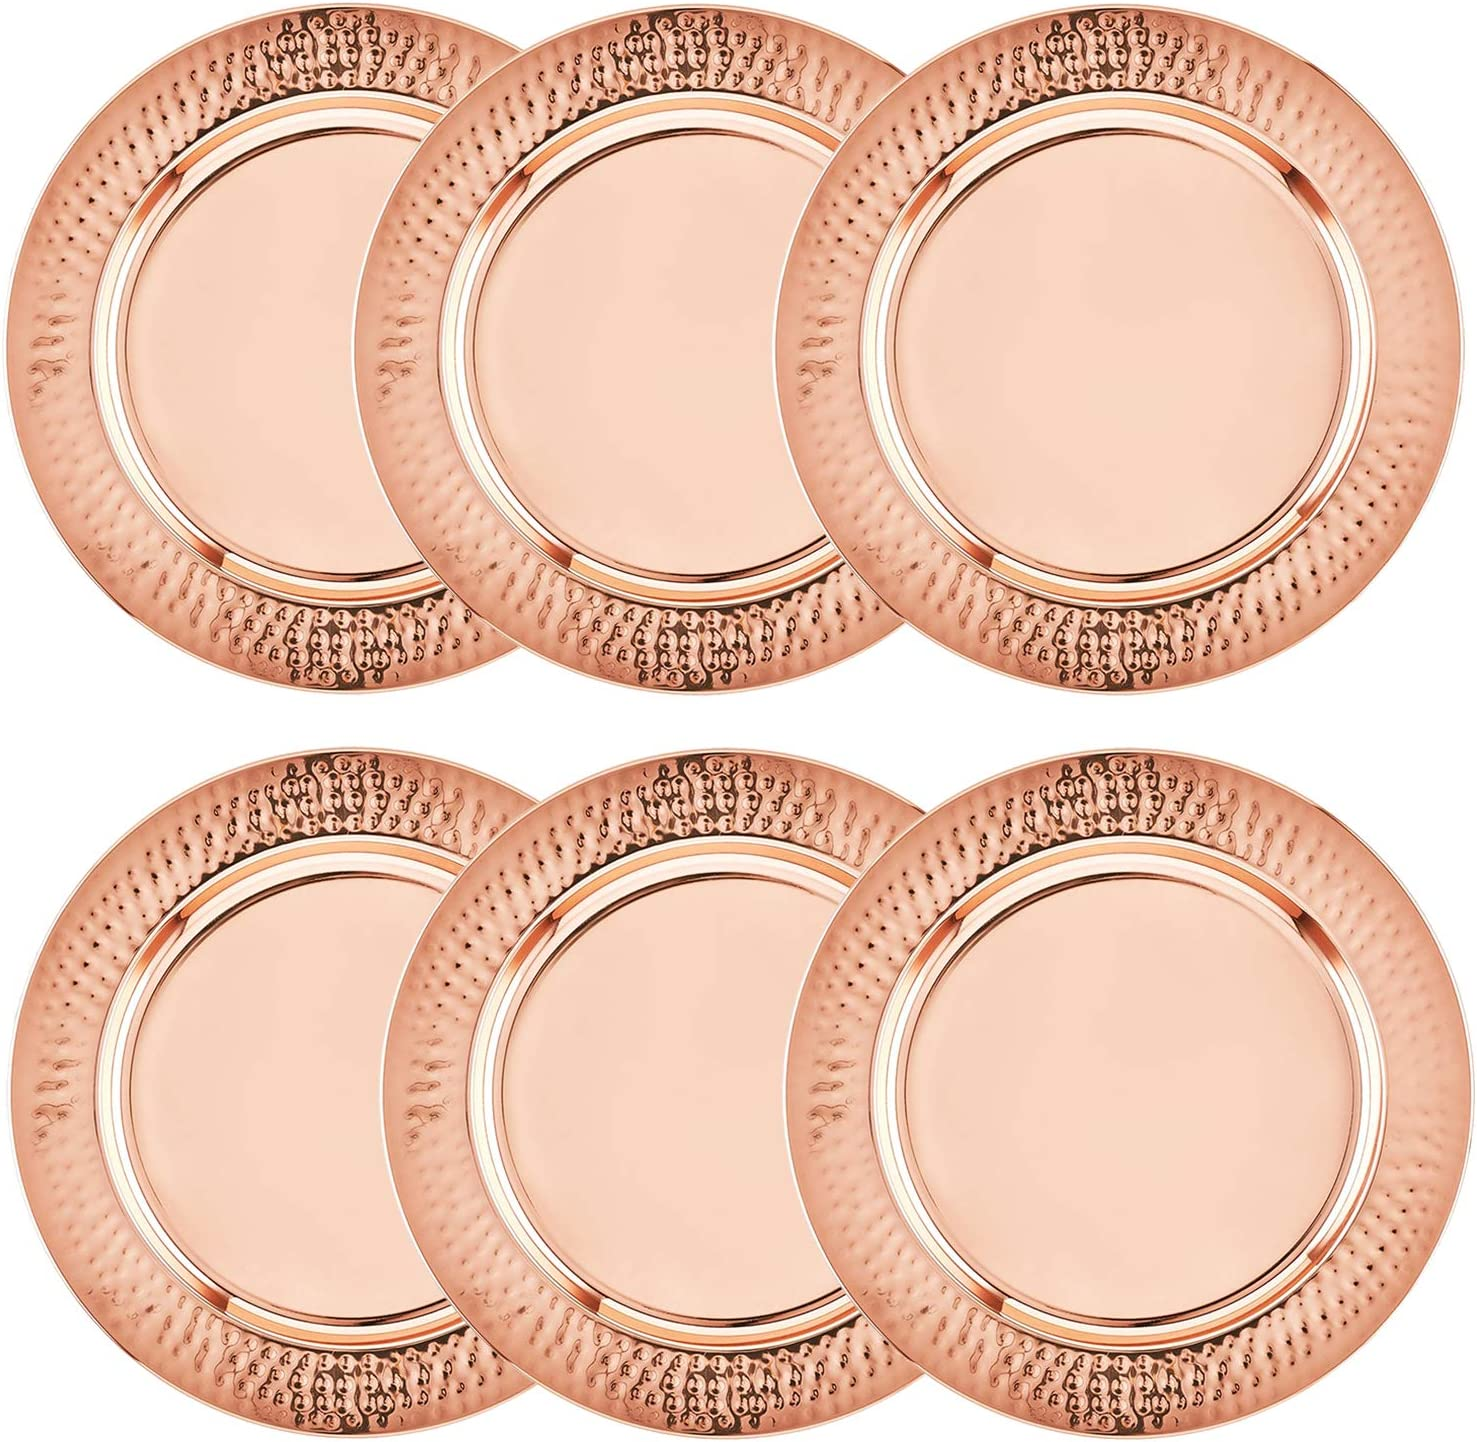 Colleta Home Copper Charger Plate - 6 Pack - 13 inch Rose Gold Charger with Hammered Rim - Copper Charger Plate Set